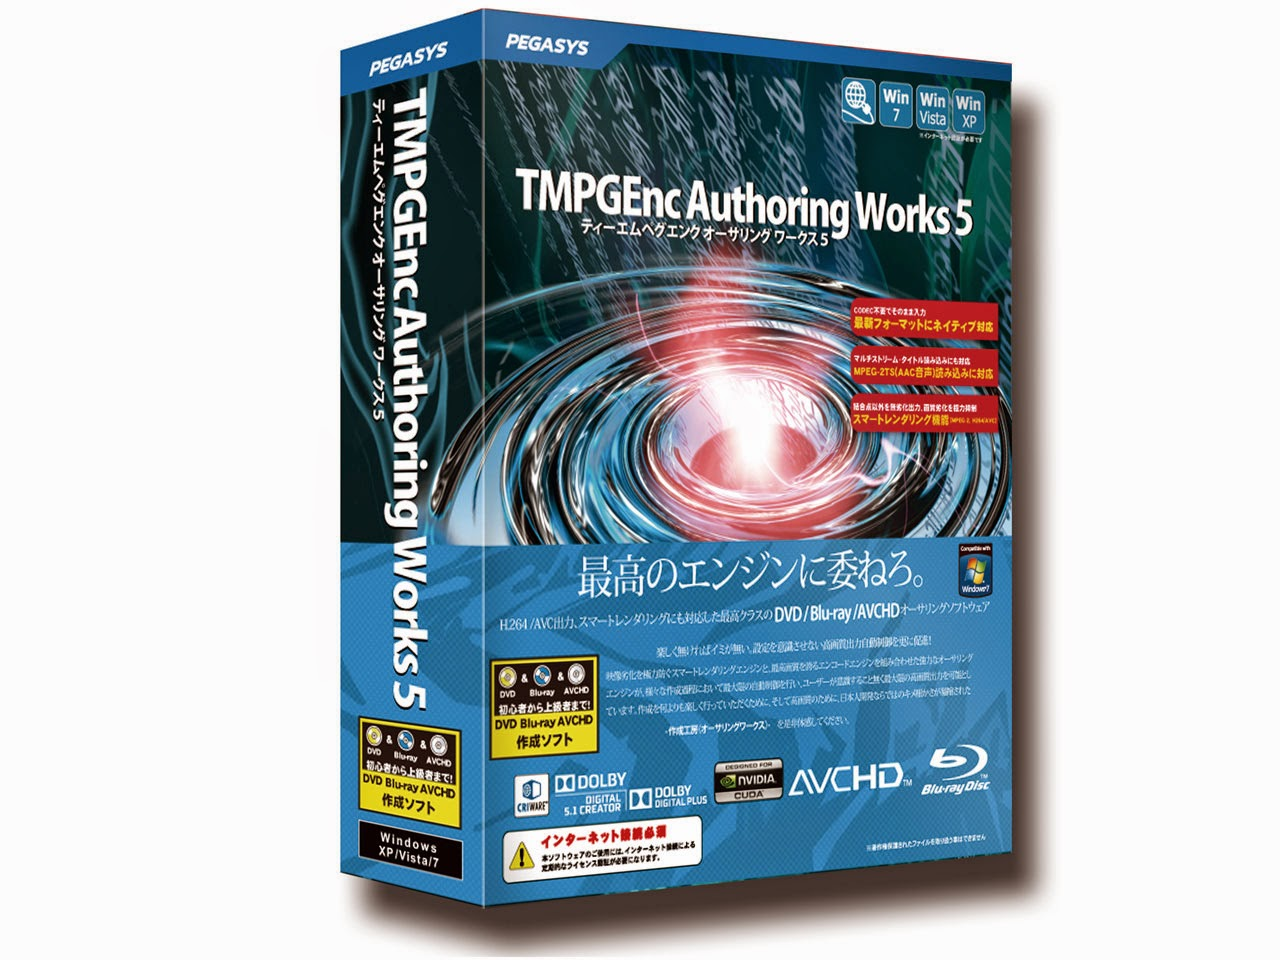 tmpgenc authoring works 5 keygen